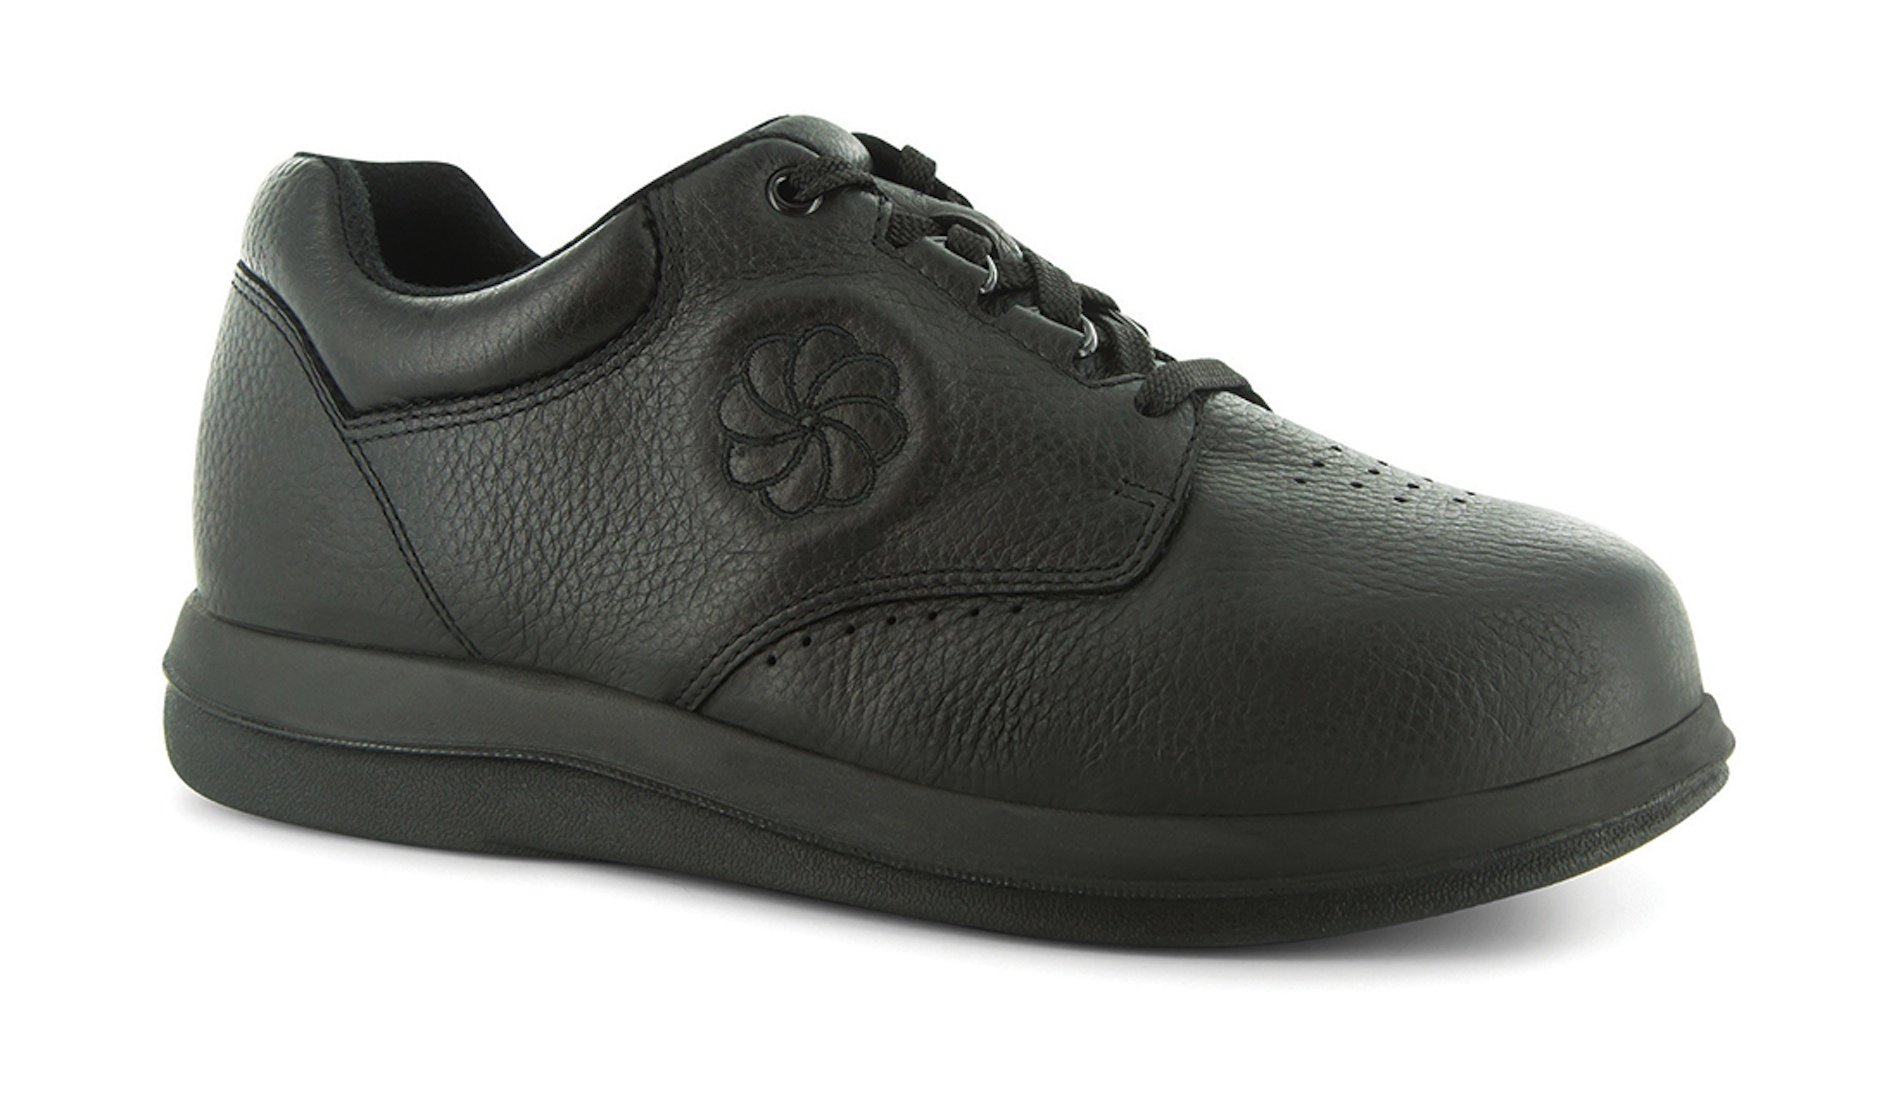 P W Minor Leisure Women's Therapeutic Casual Extra Depth Shoe: Black 6 Wide (D) Lace by P.W. Minor